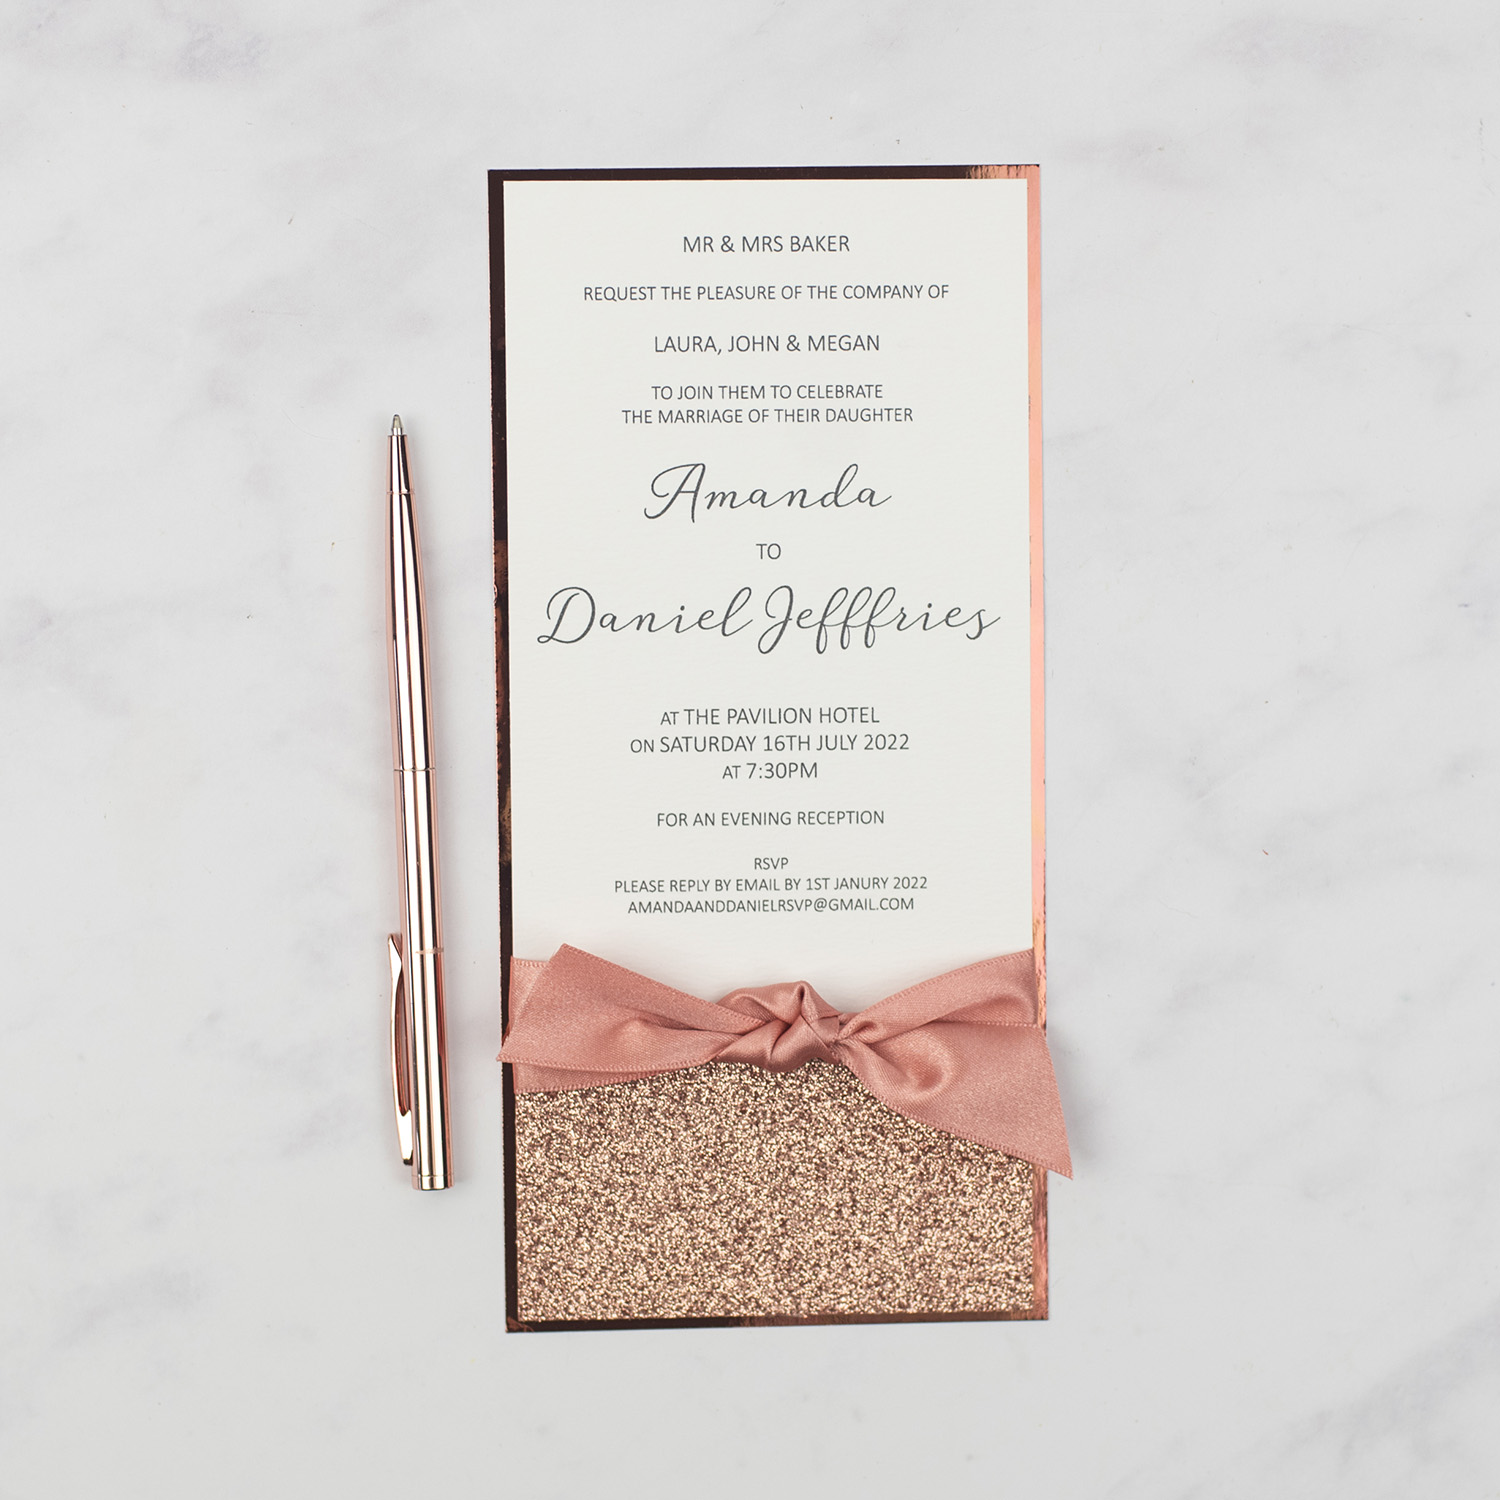 luxury wedding invitation flat invite rose gold glitter satin ribbon bow copper foil edge